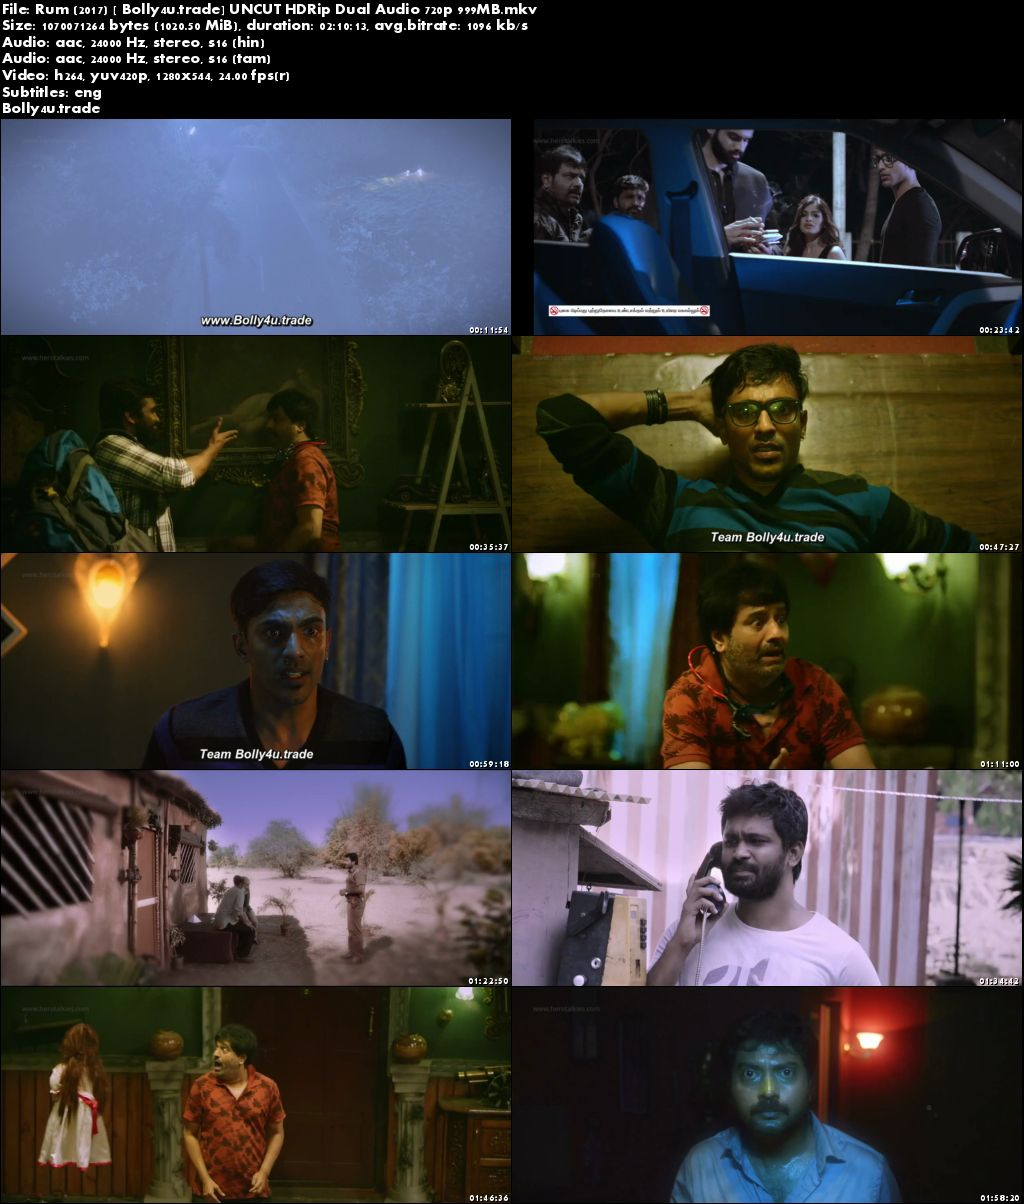 Rum 2017 HDRip 999Mb UNCUT Hindi Dubbed Dual Audio 720p Download